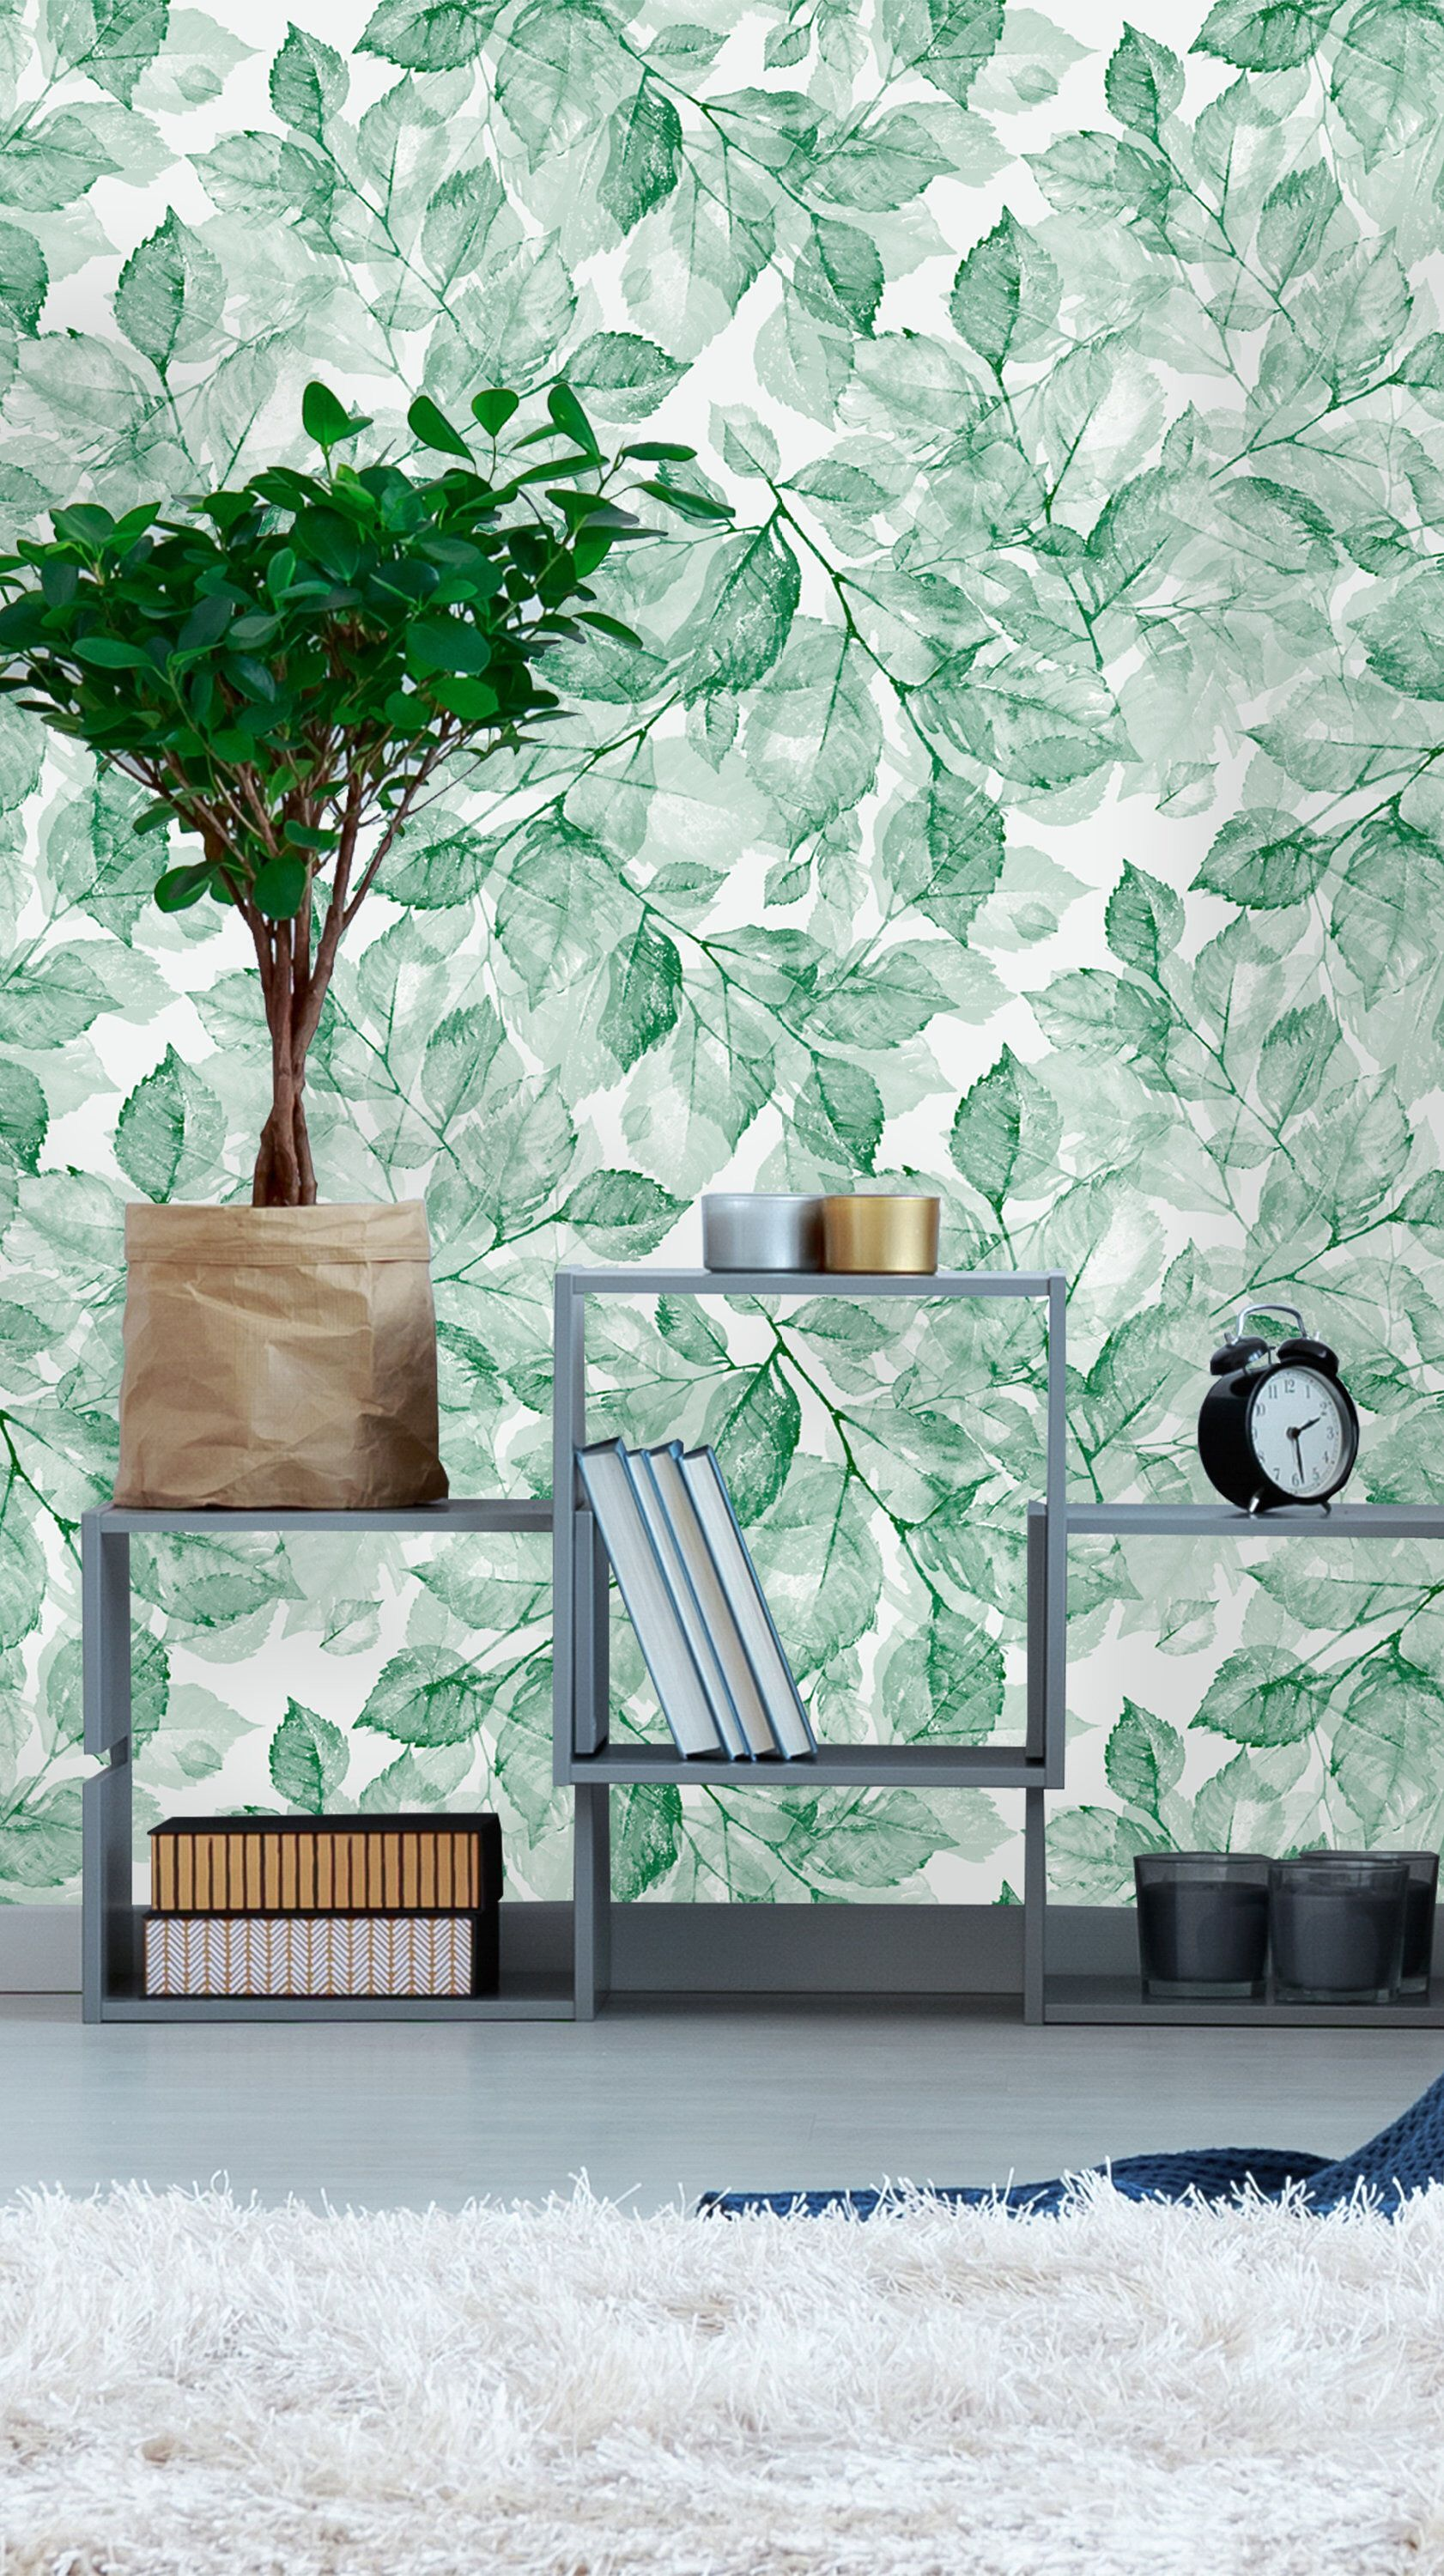 Removable Wallpaper Self Adhesive Wallpaper Green